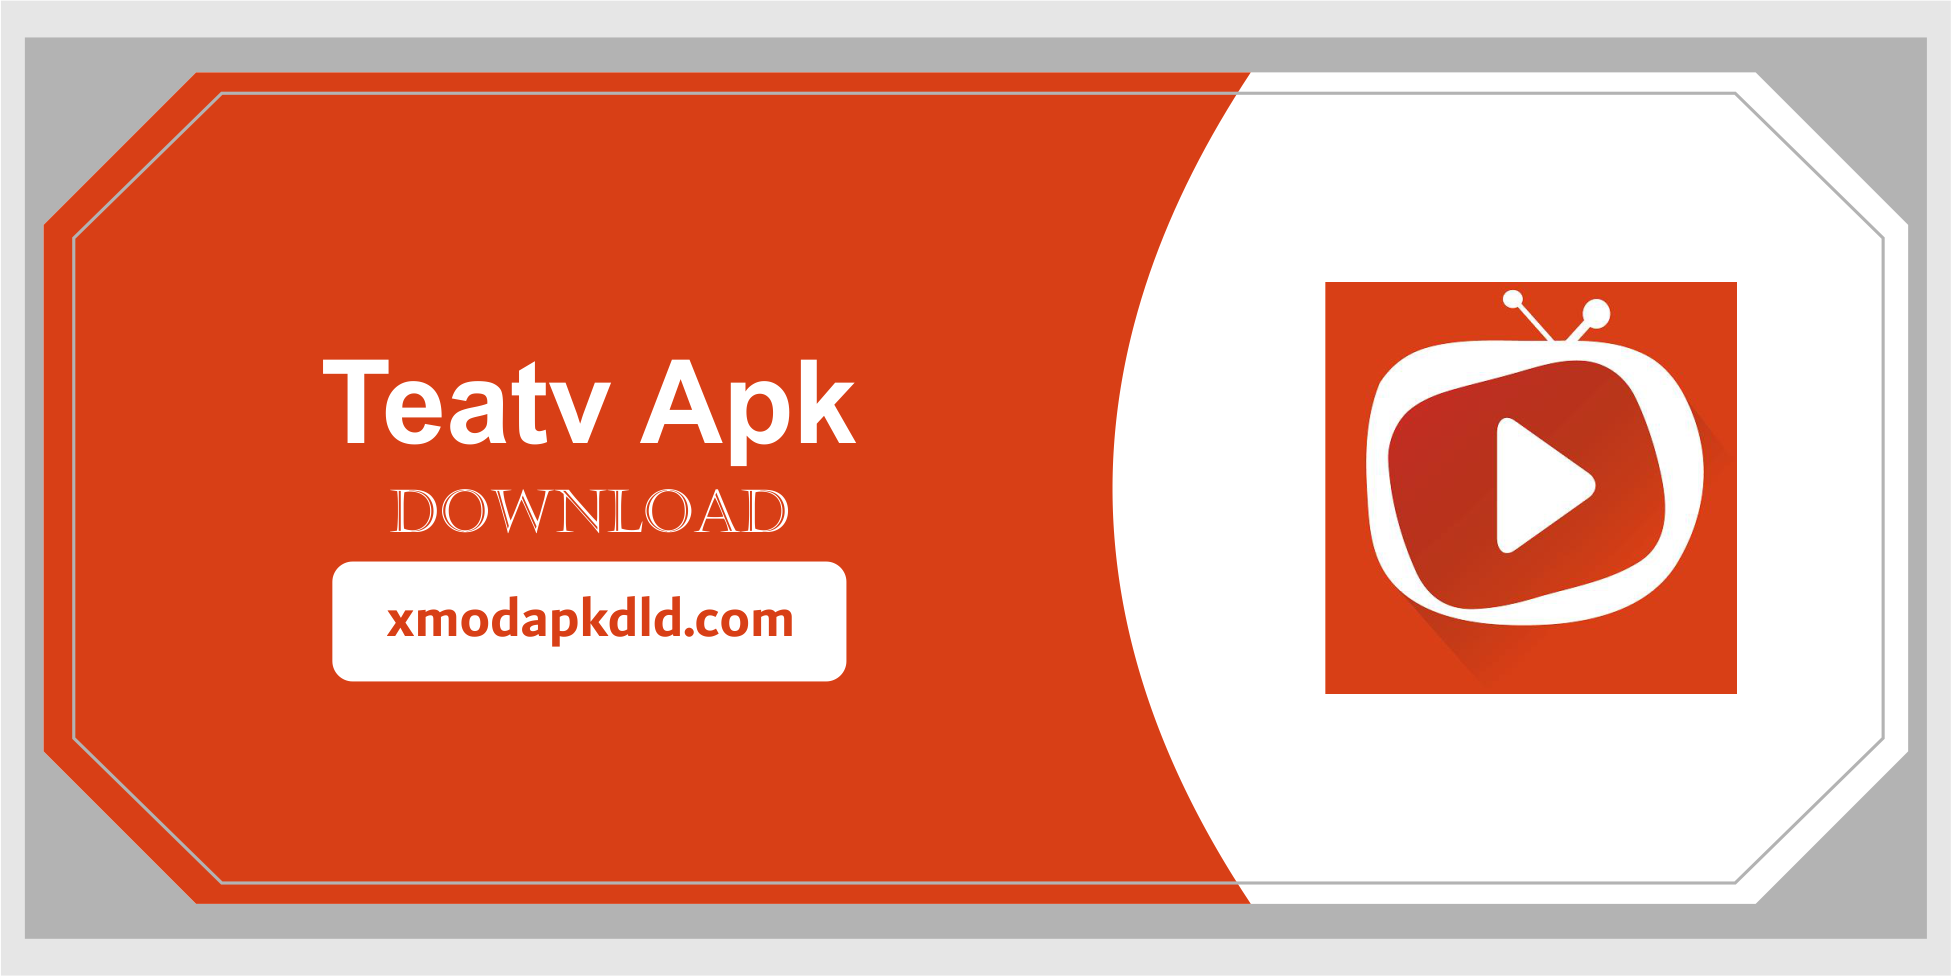 Teatv Apk Download Latest Version Free 2020 Andriod Ios Firestick Pc